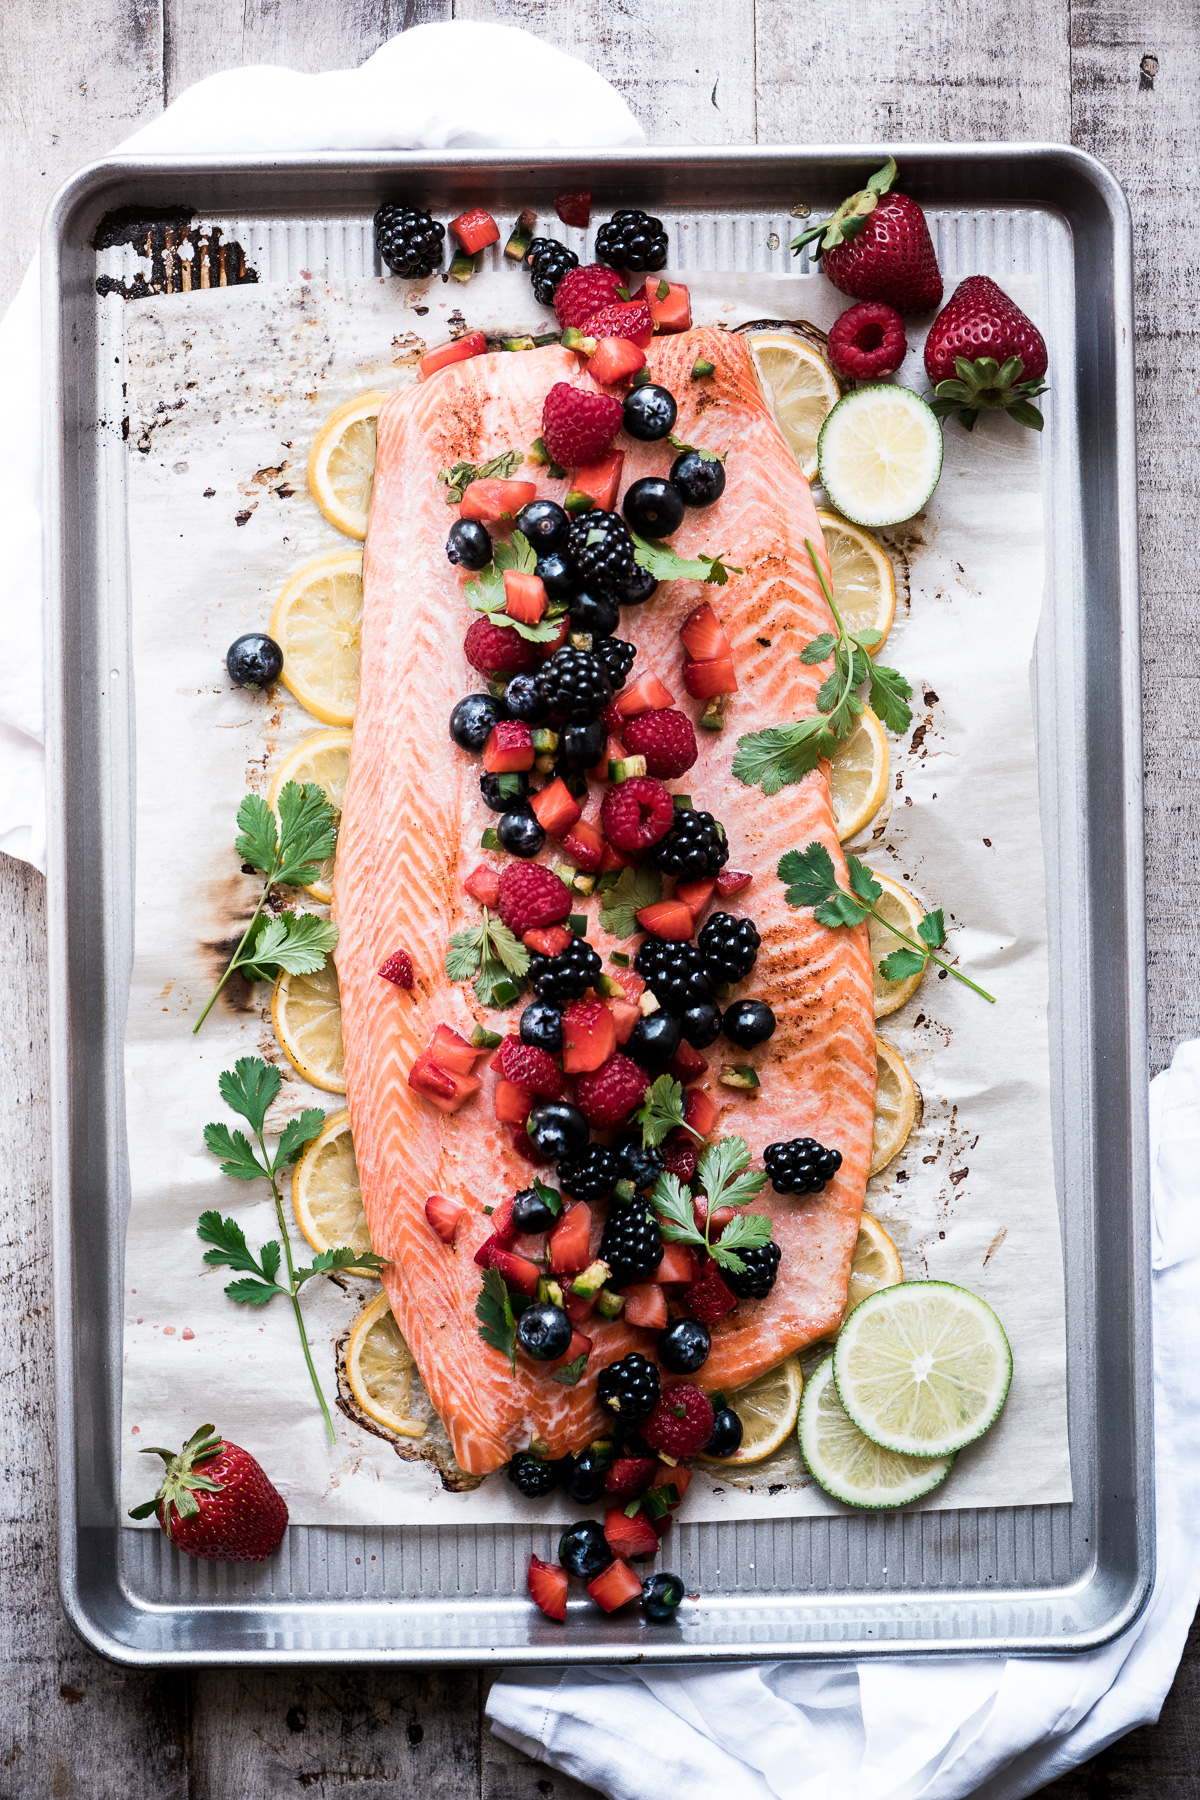 Salmon with berry salsa on a sheet pan